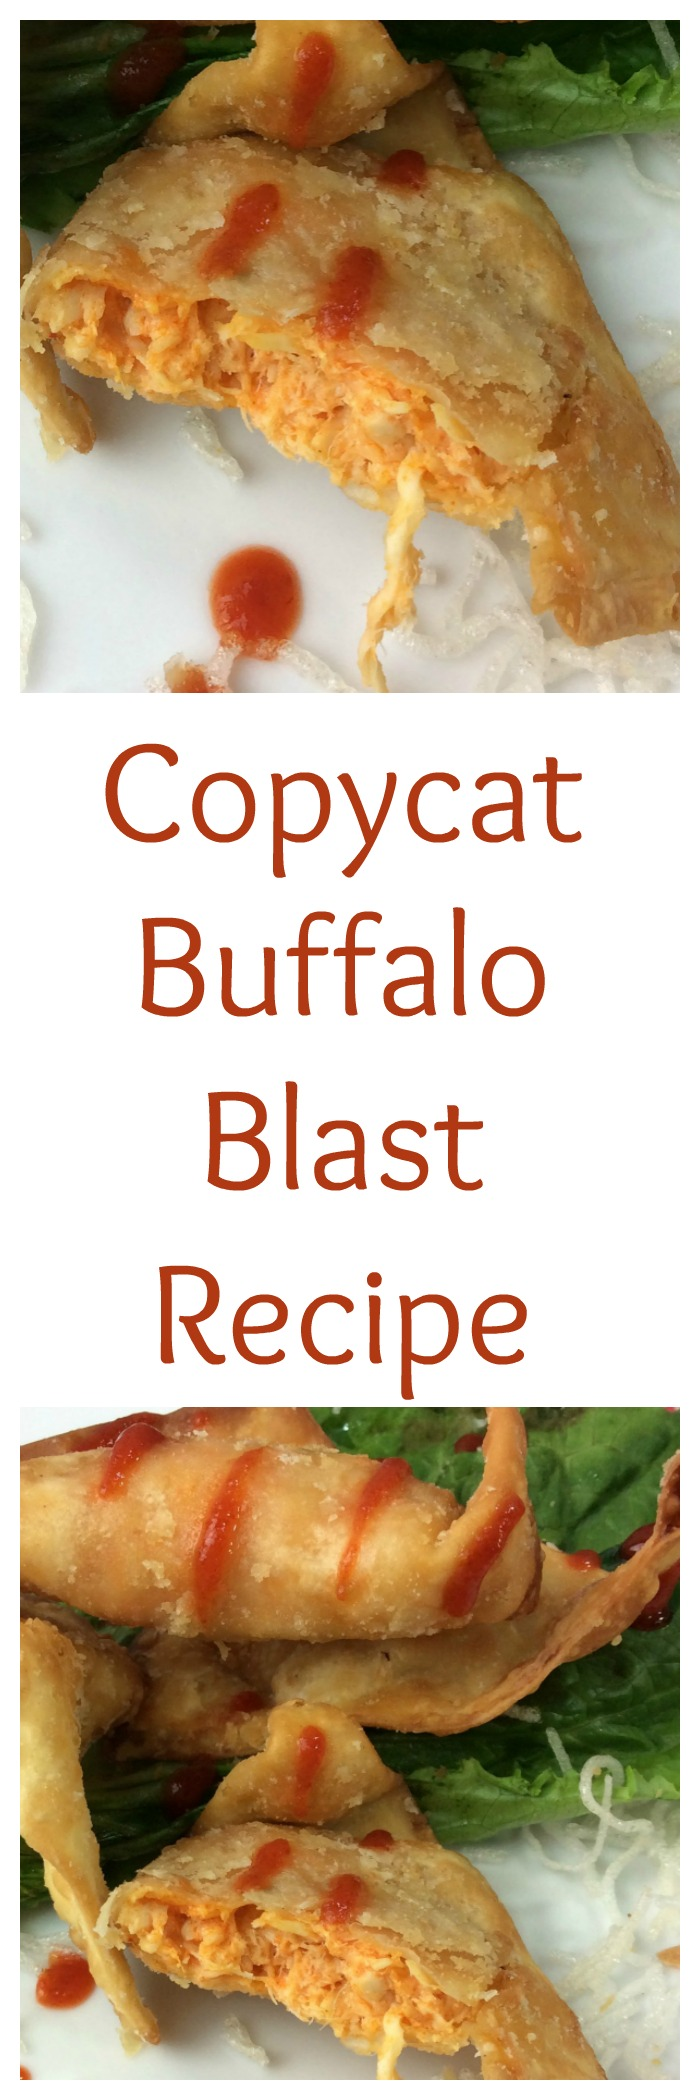 The Cheesecake Factory Buffalo Blasts copycat recipe is filled with Chicken, Cheese and Spicy Buffalo Sauce in a fried wonton wrapper. It is fried to add the perfect amount of crunch.